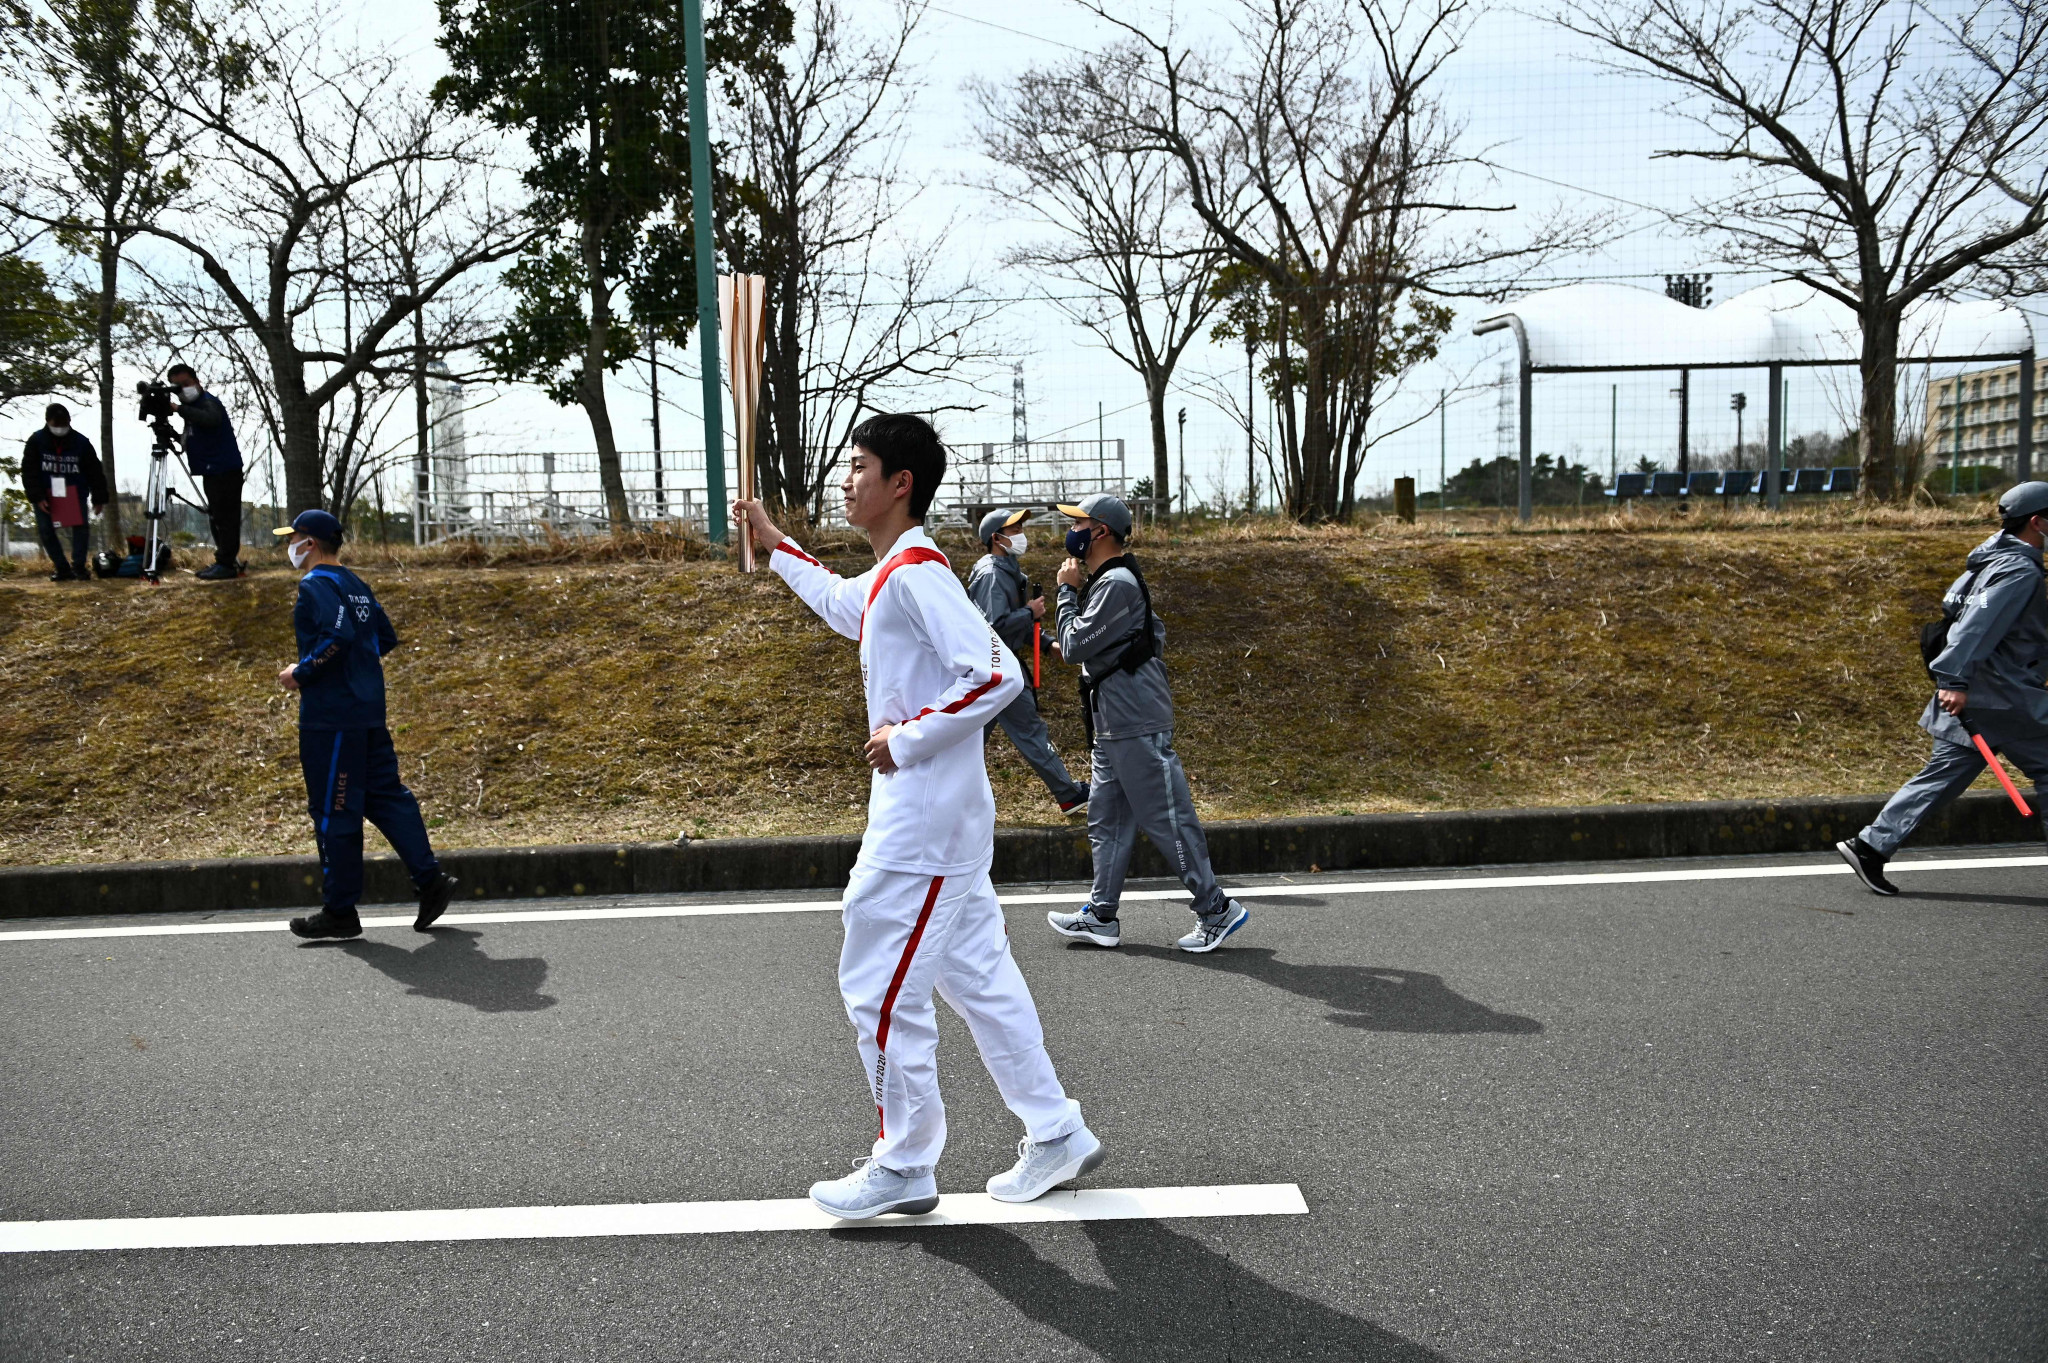 Asato Owada, a 16-year-old goalkeeper and Fukushima native, was another Torchbearer ©Getty Images